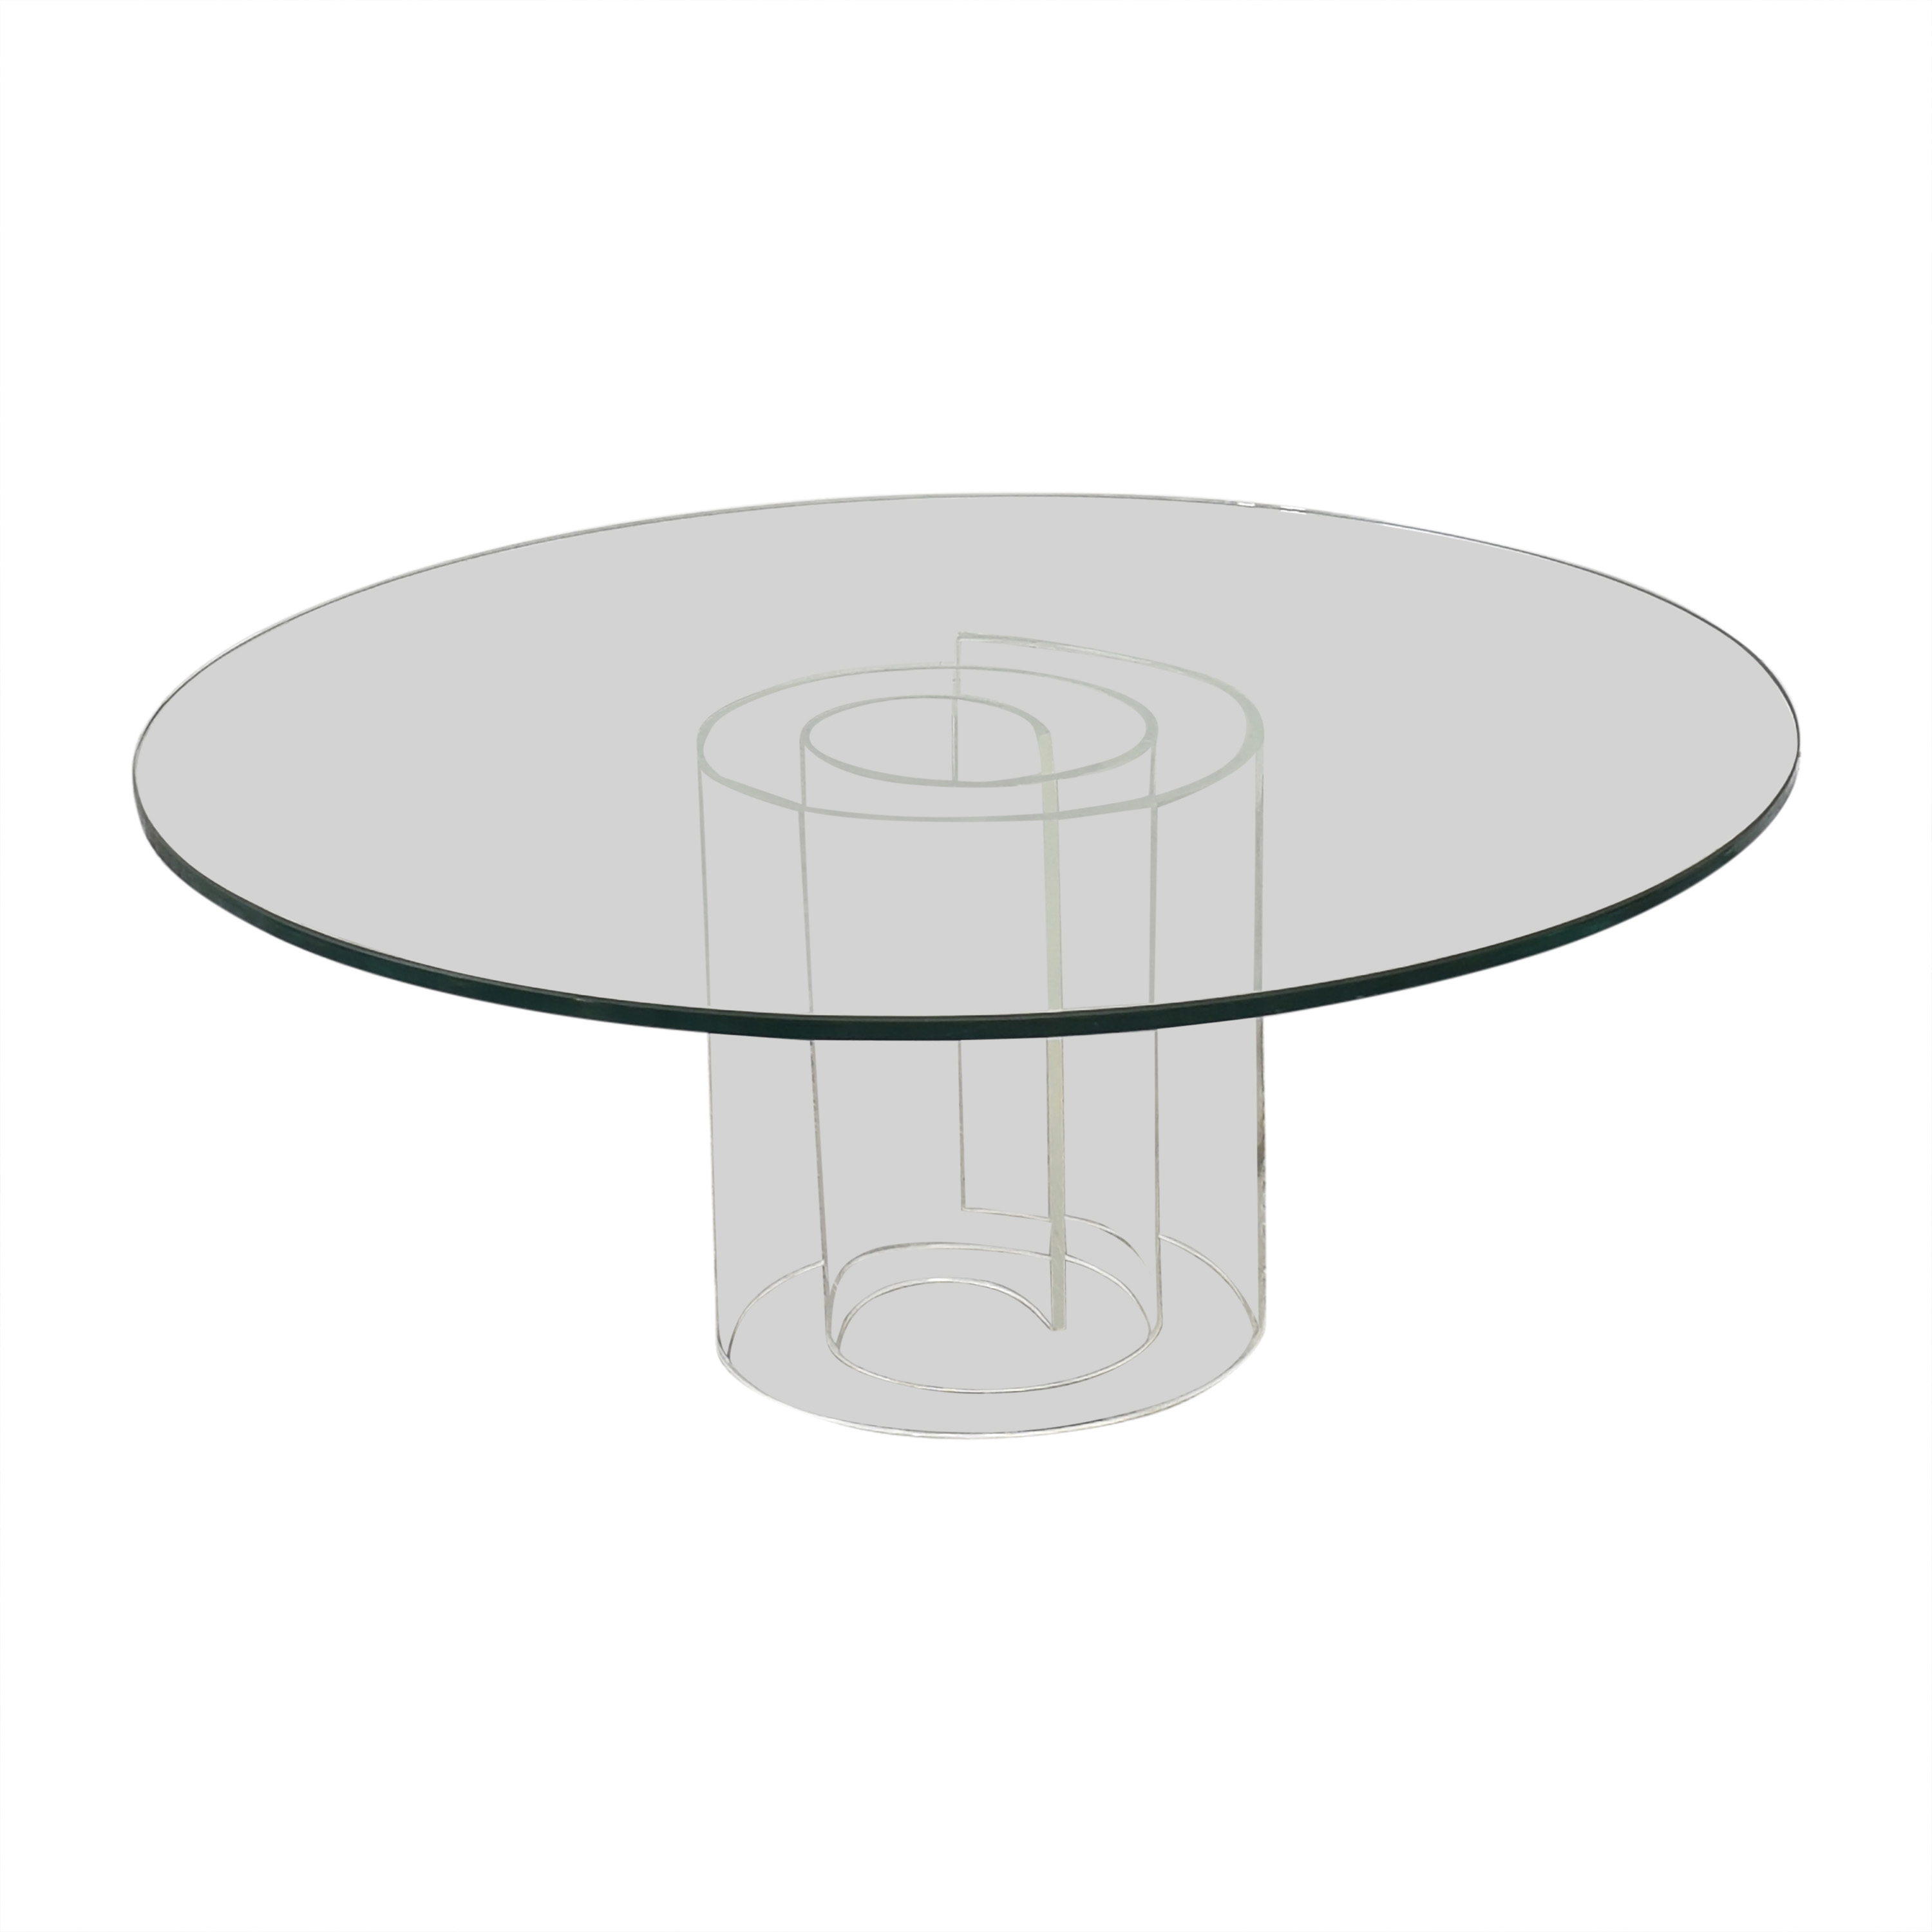 Crate & Barrel Crate & Barrel Glass Coffee Table ct